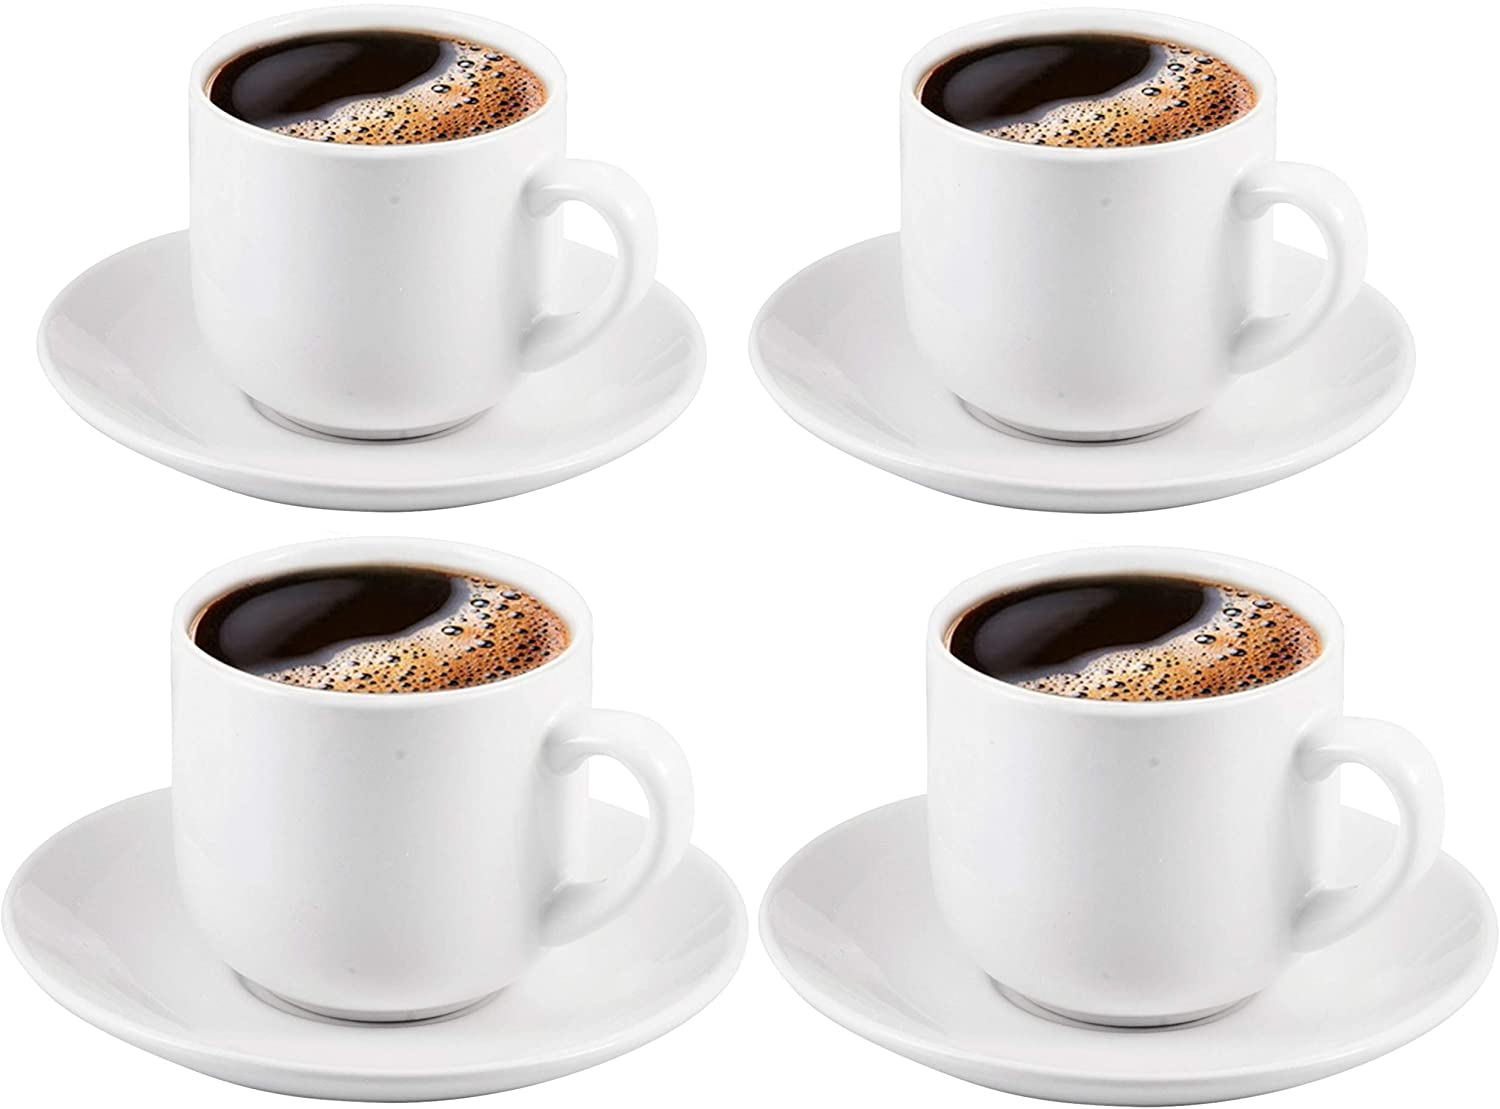 Bruntmor 4 Oz Espresso Cups And Saucers Set, Made Of Pro ...